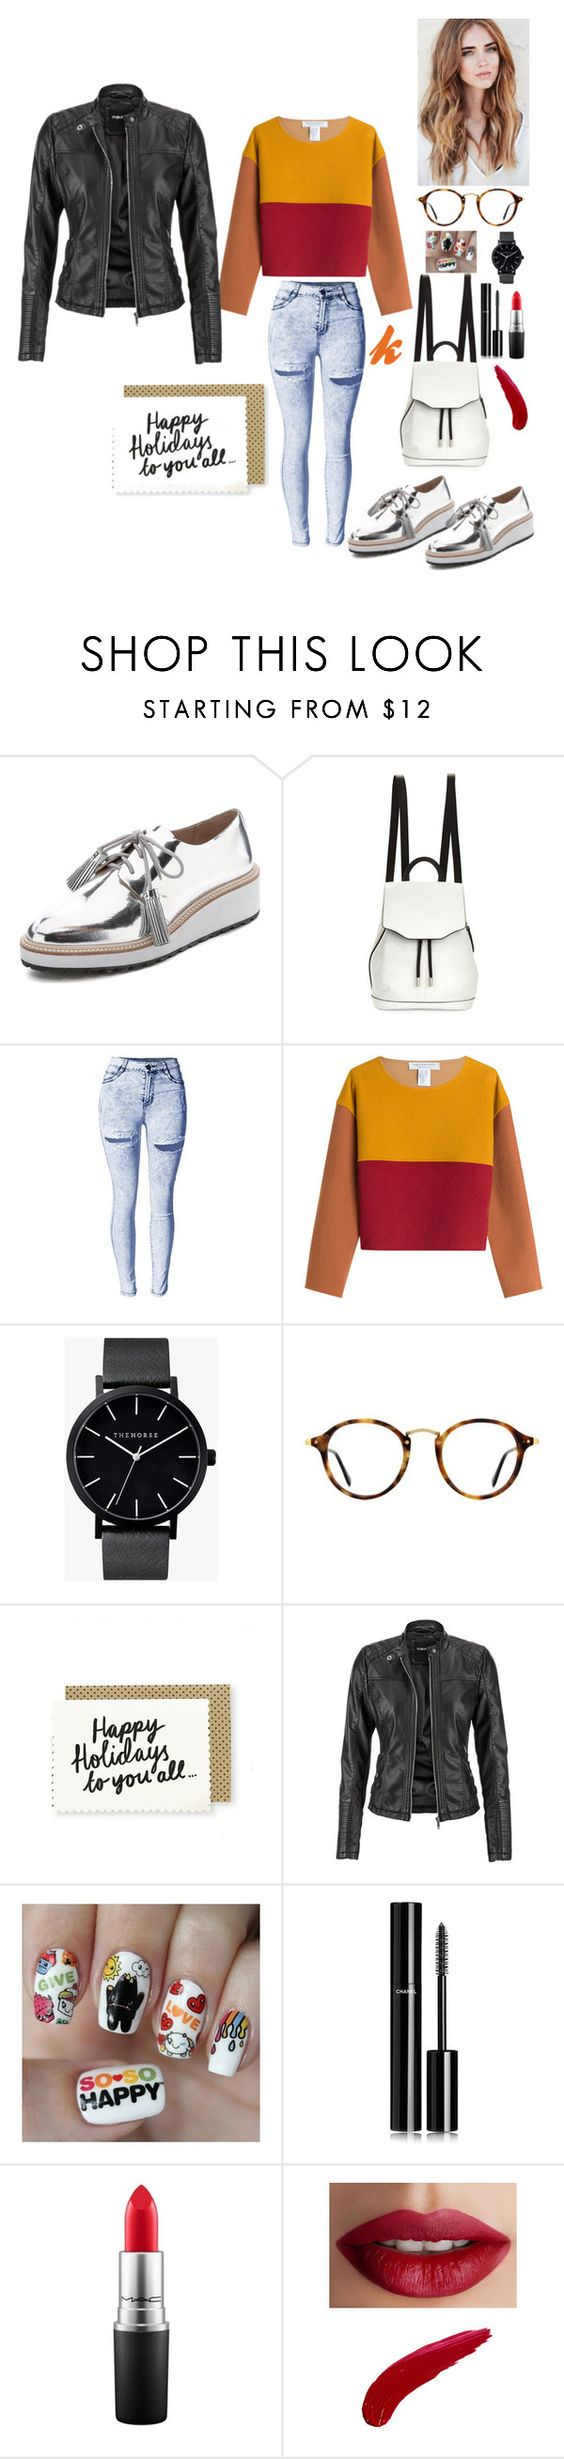 """Orange day"" by kathy-97 ❤ liked on Polyvore featuring moda, Loeffler Randall, rag & bone, Philosophy di Lorenzo Serafini, The Horse, Ray-Ban, maurices, Nail Pop, Chanel y MAC Cosmetics"